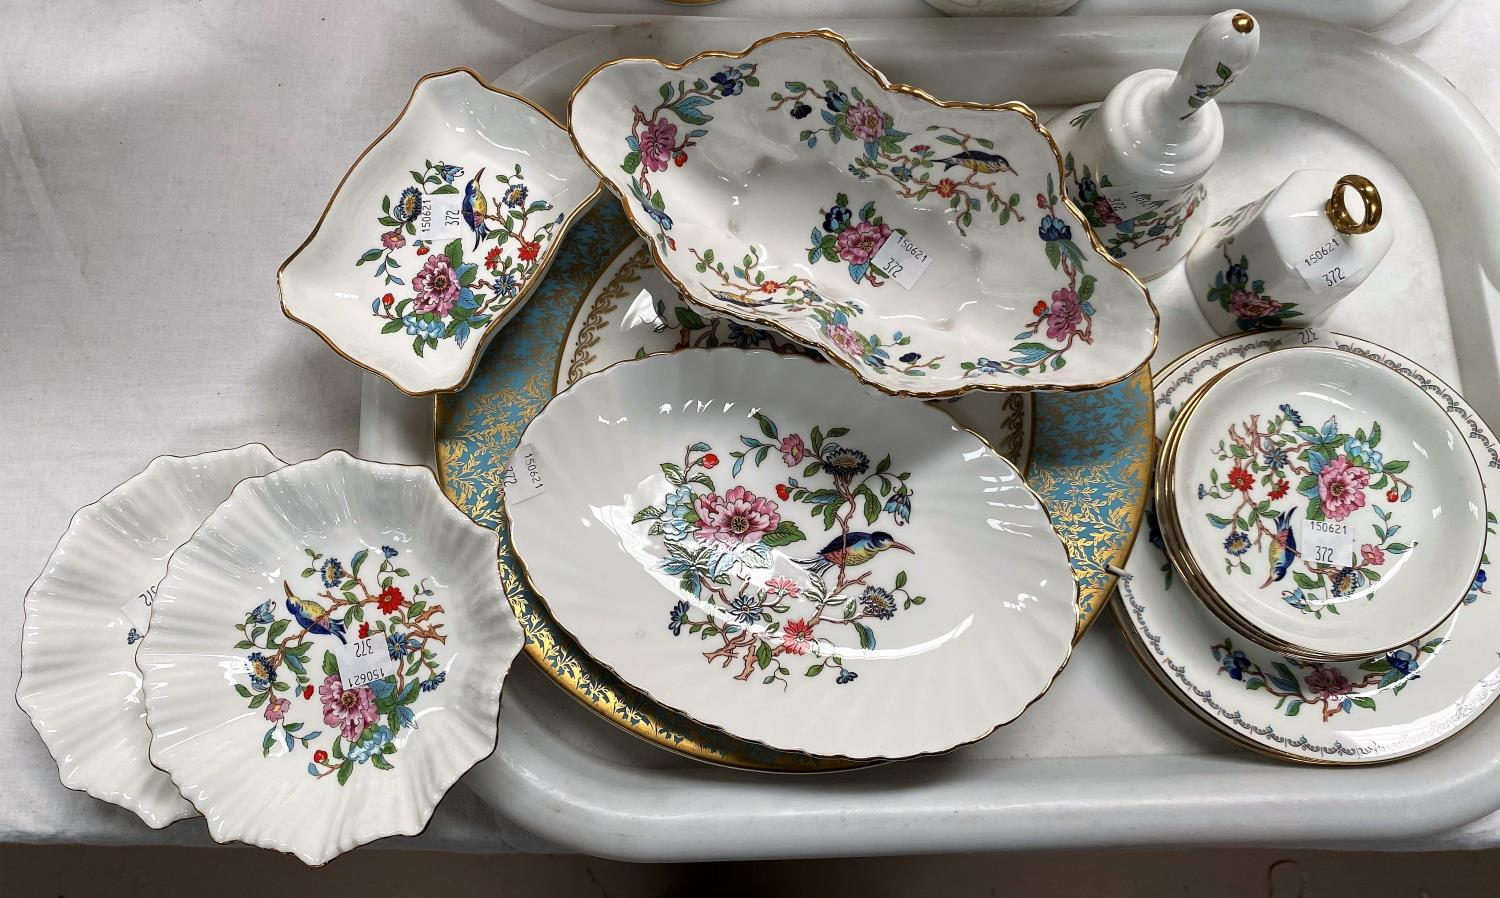 A selection of Aynsley china and trinket ware, 20 pieces approx - Image 2 of 3